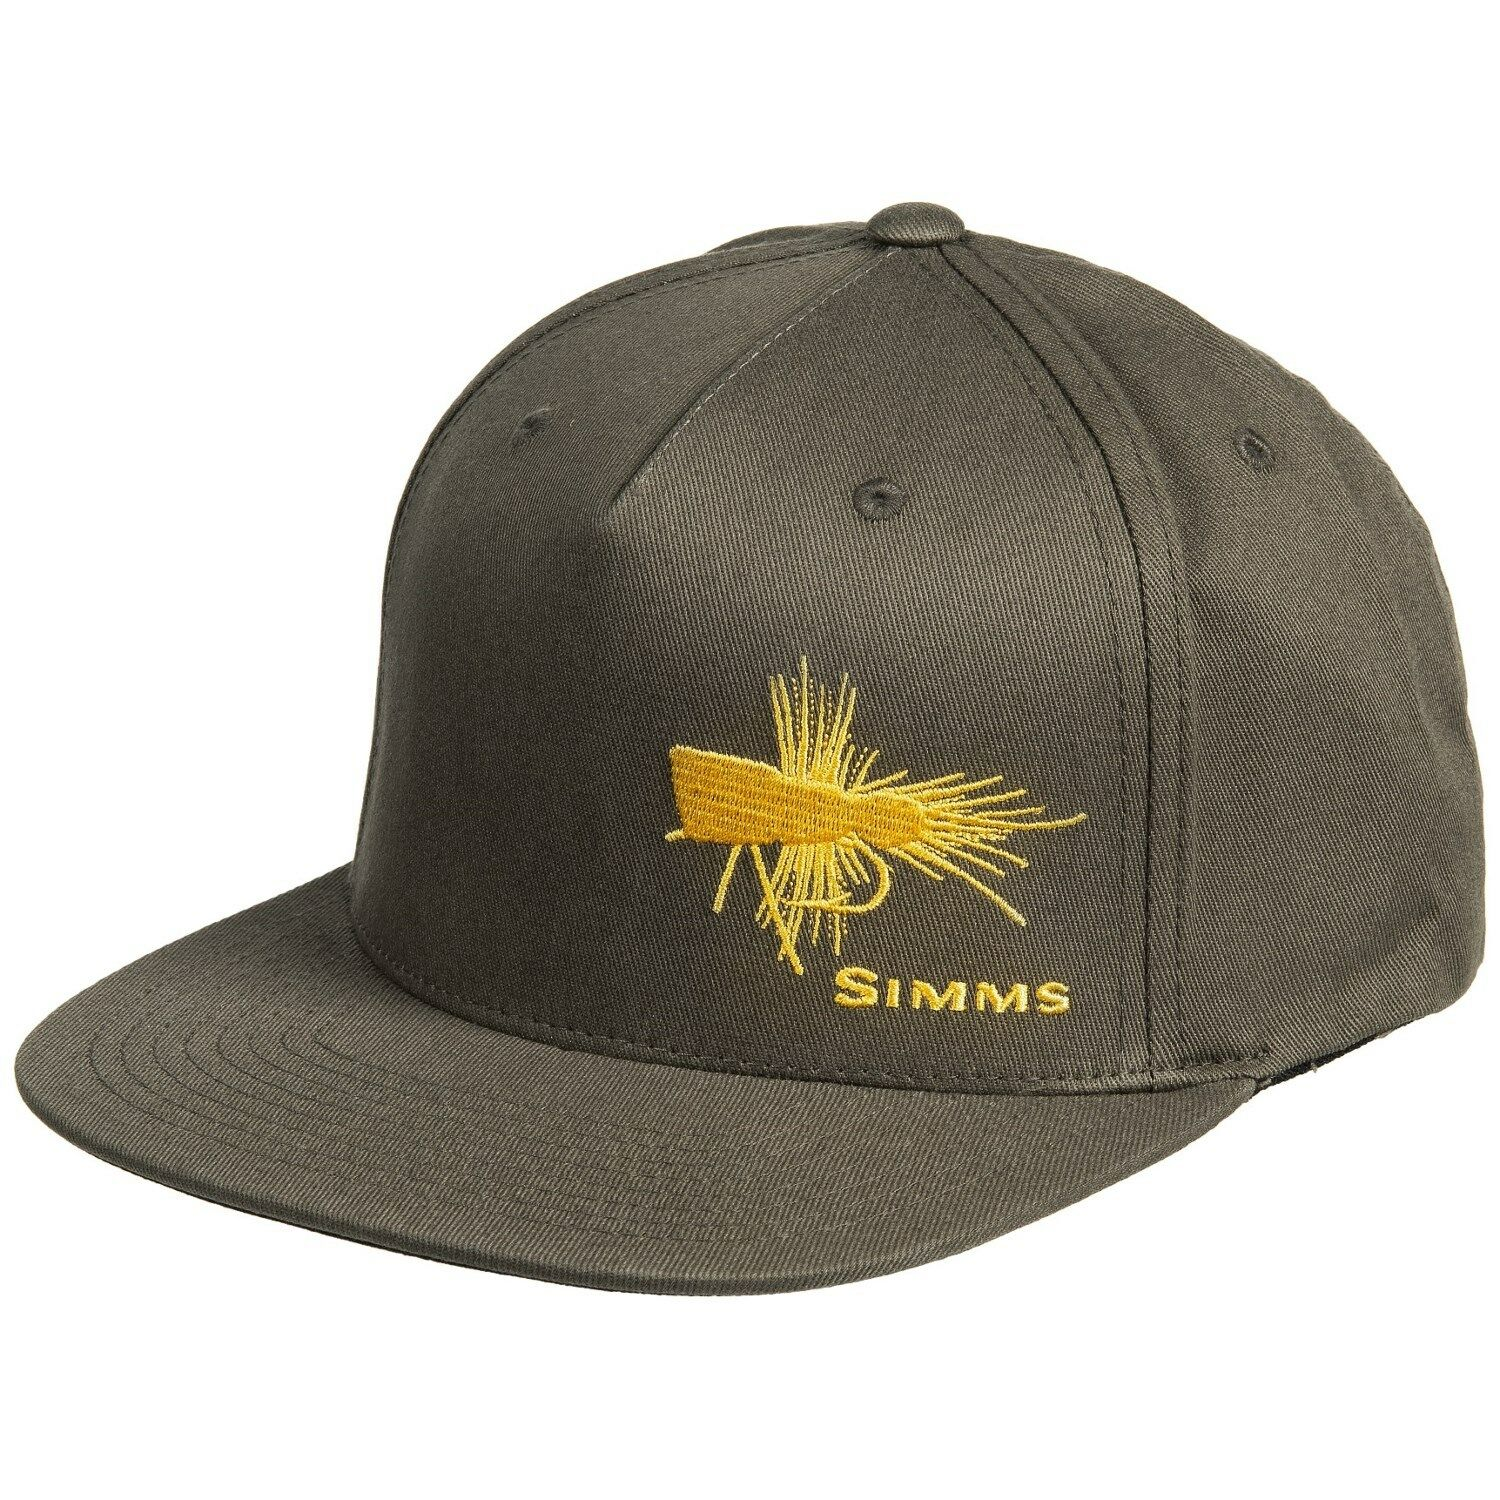 82c2b5f72ea Simms Fishing Trout Fly Cotton Twill Snapback Baseball Cap Loden for ...